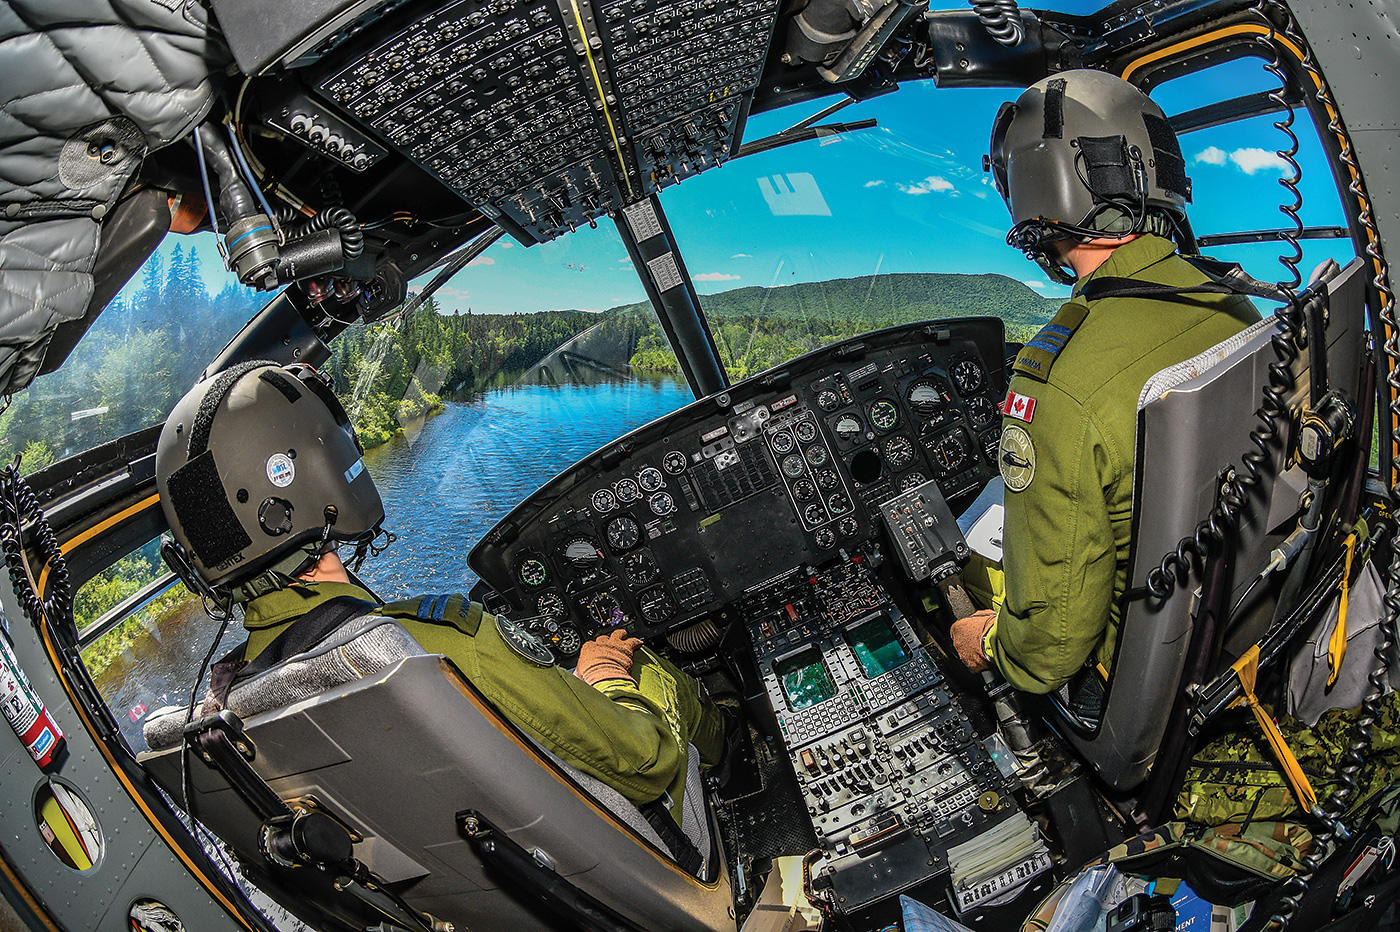 An RCAF crew from 430 Squadron flies a CH-146 Griffon helicopter near Valcartier, Que. While there are some regulatory and procedural differences, military pilots will undoubtedly find their years of service have prepared them well for civilian employment. Mike Reyno Photo